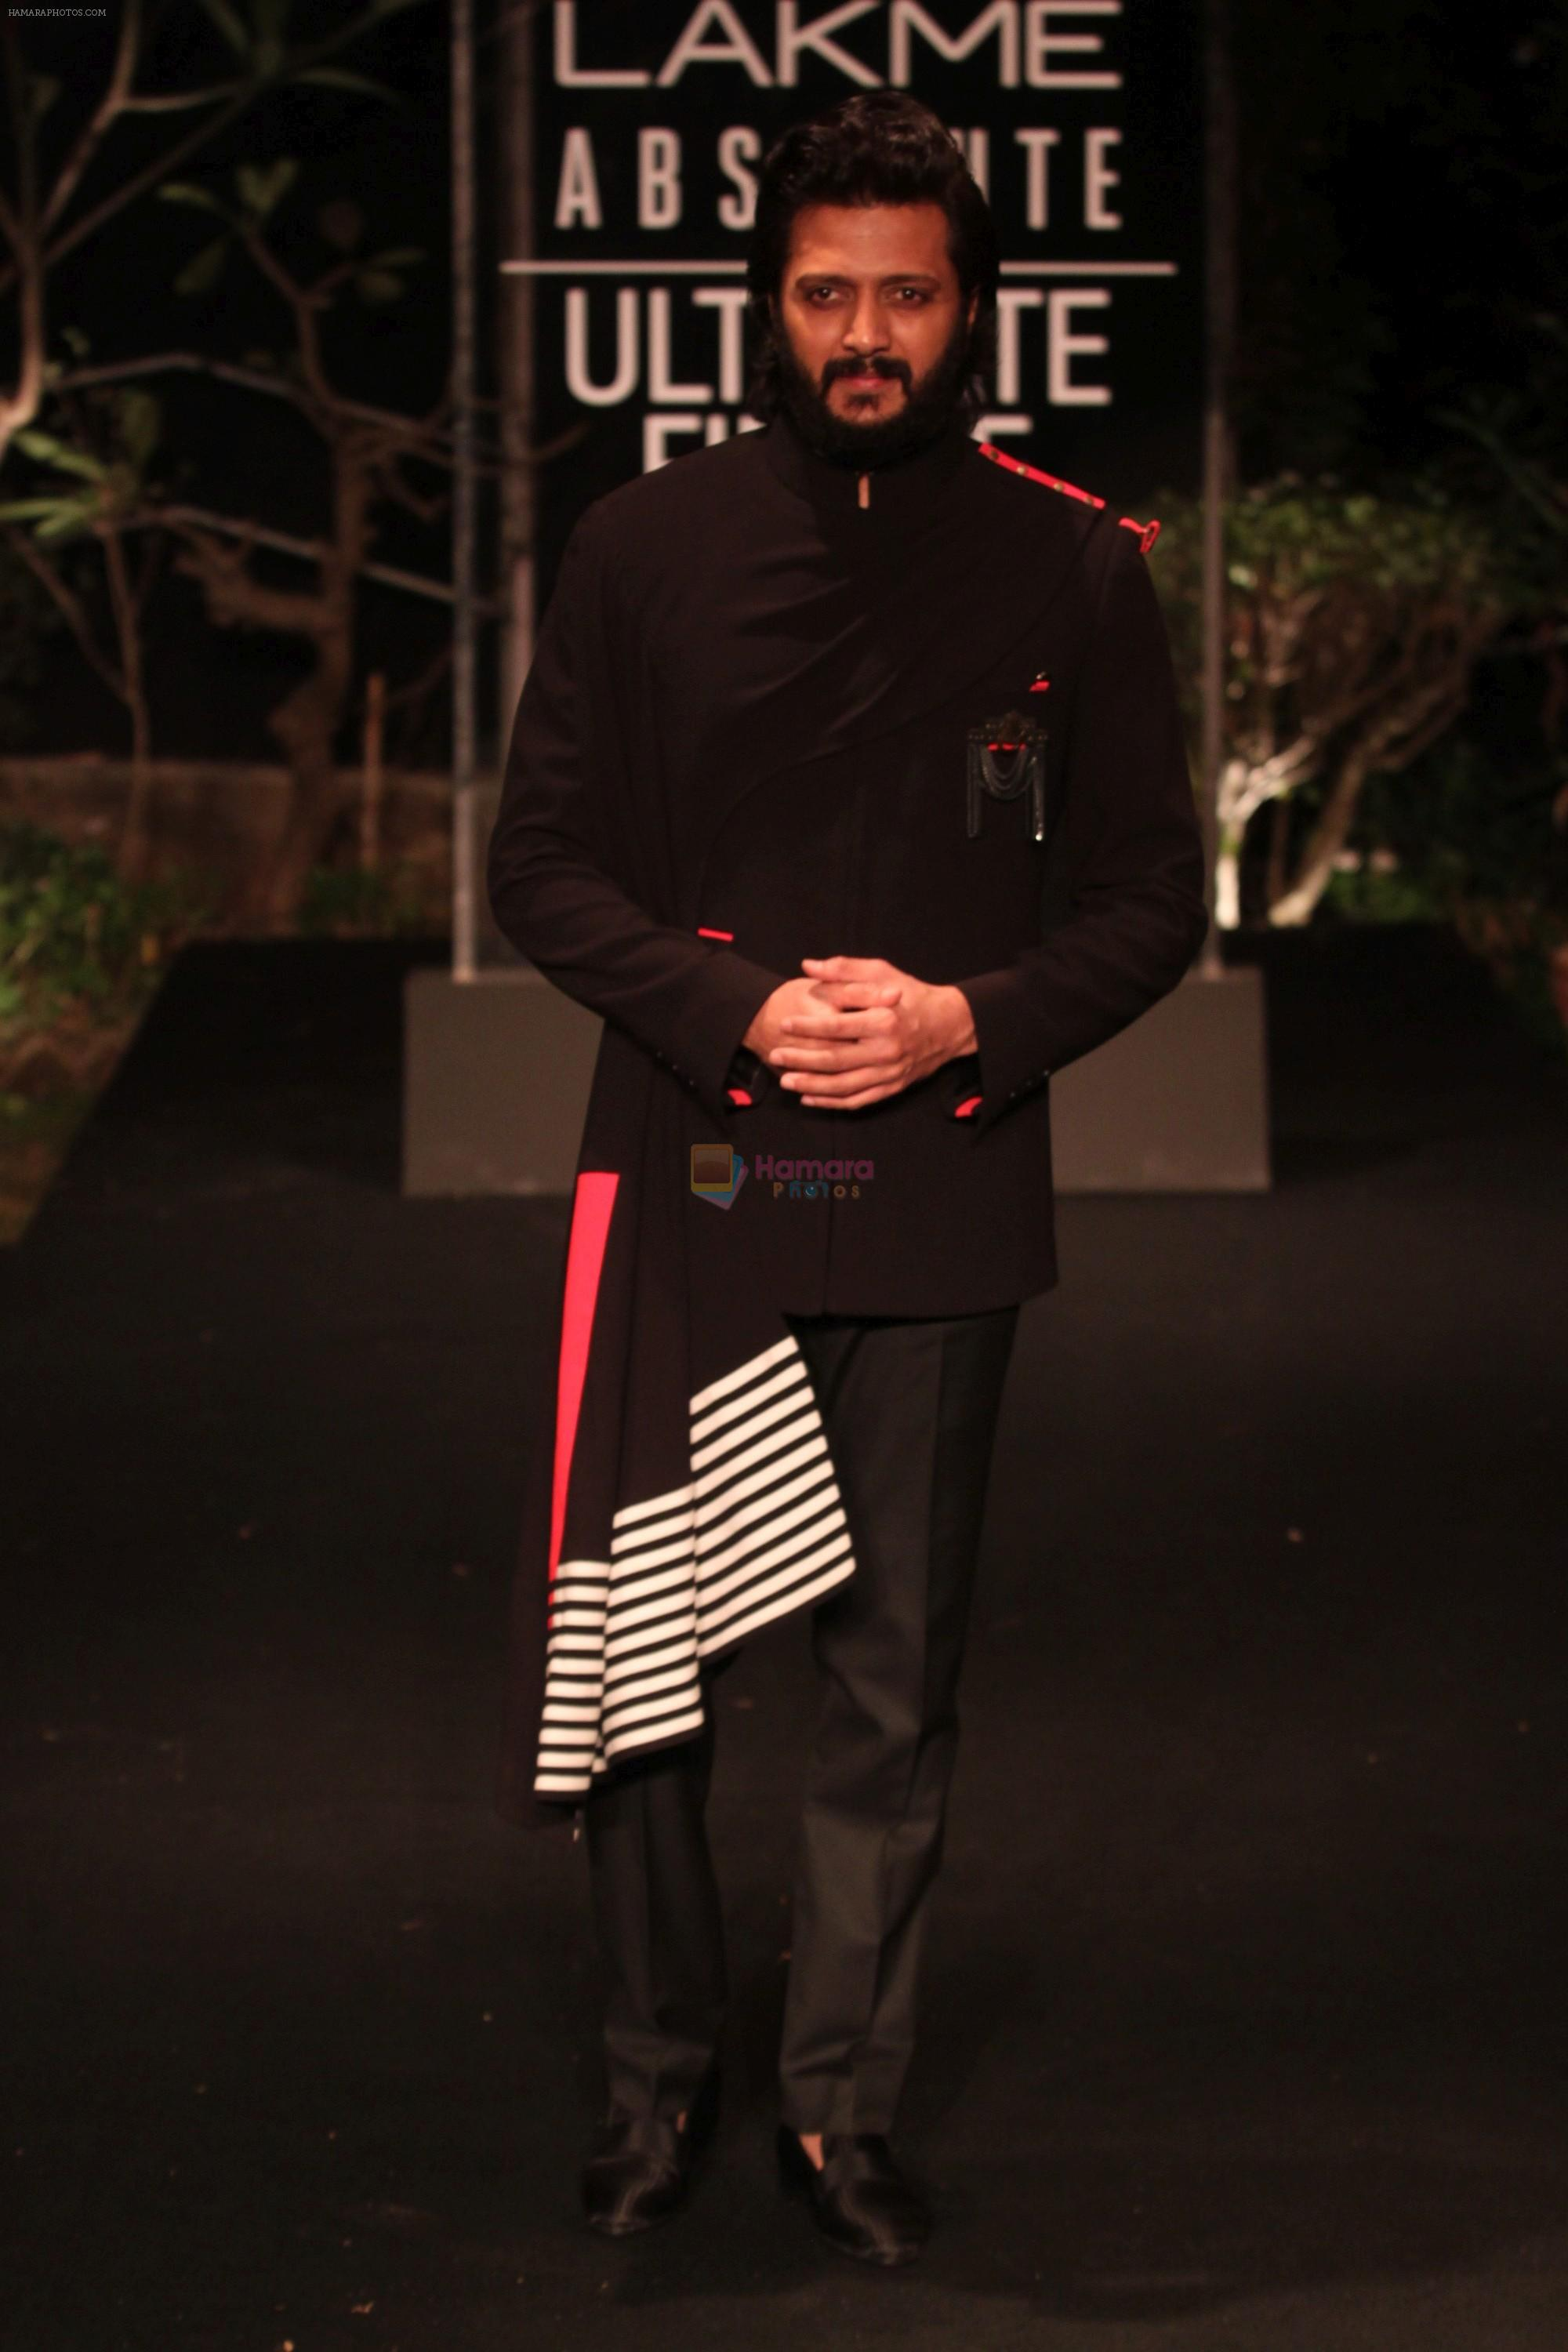 Riteish Deshmukh on Day 5 at Lakme Fashion Week 2019  on 3rd Feb 2019